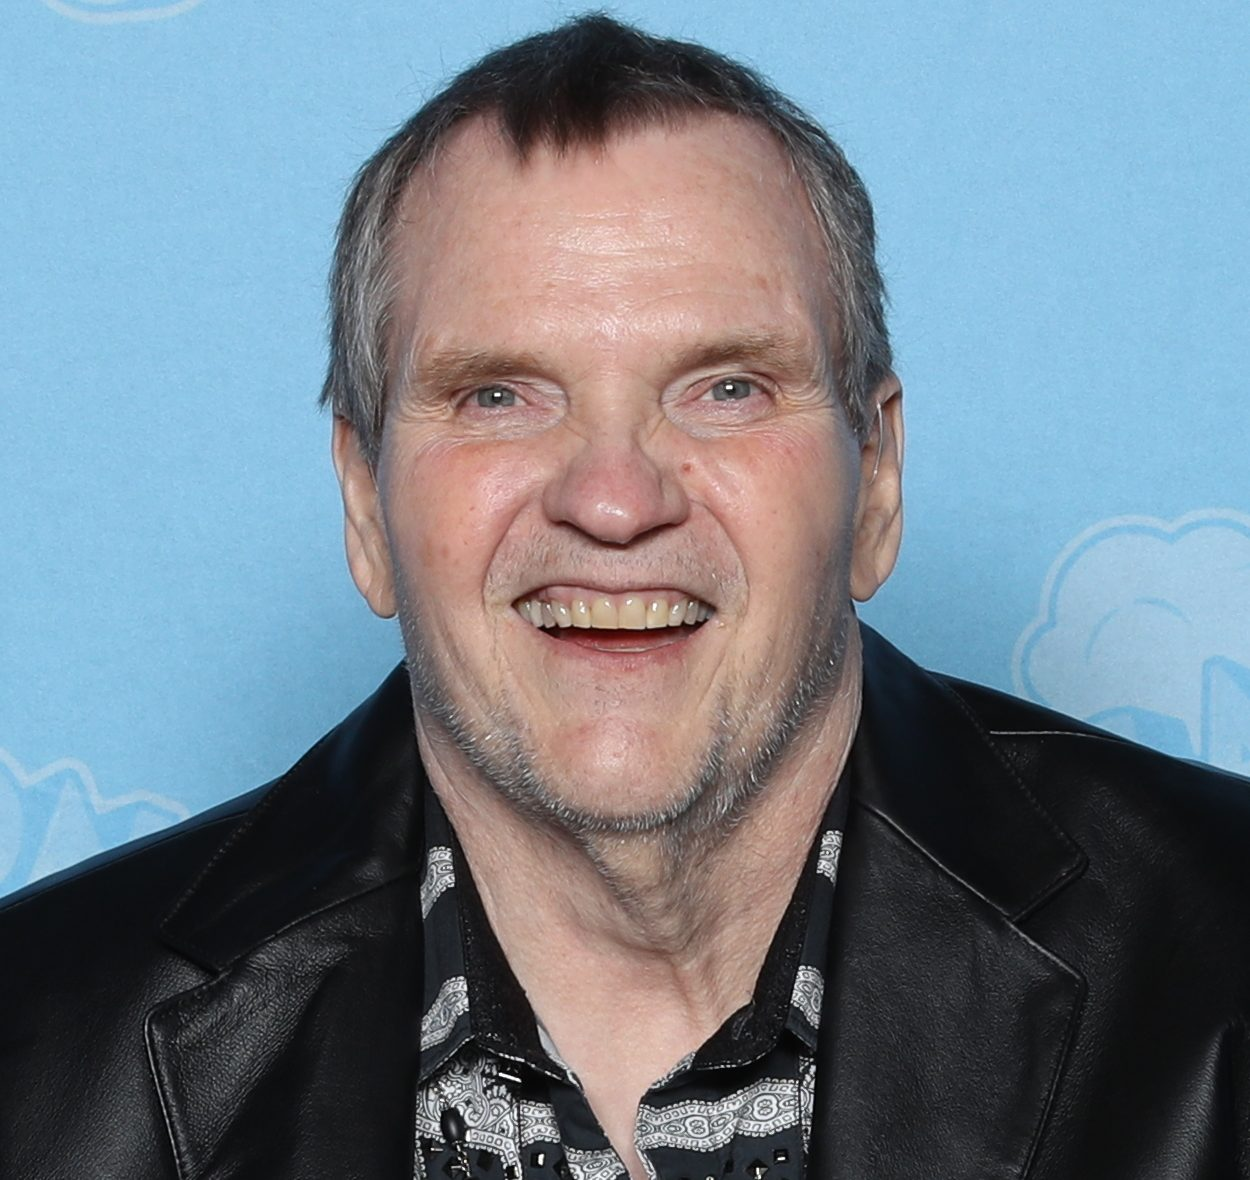 Meat Loaf Photo Op GalaxyCon Raleigh 2019 e1619432309481 30 Things You Never Knew About Animal House